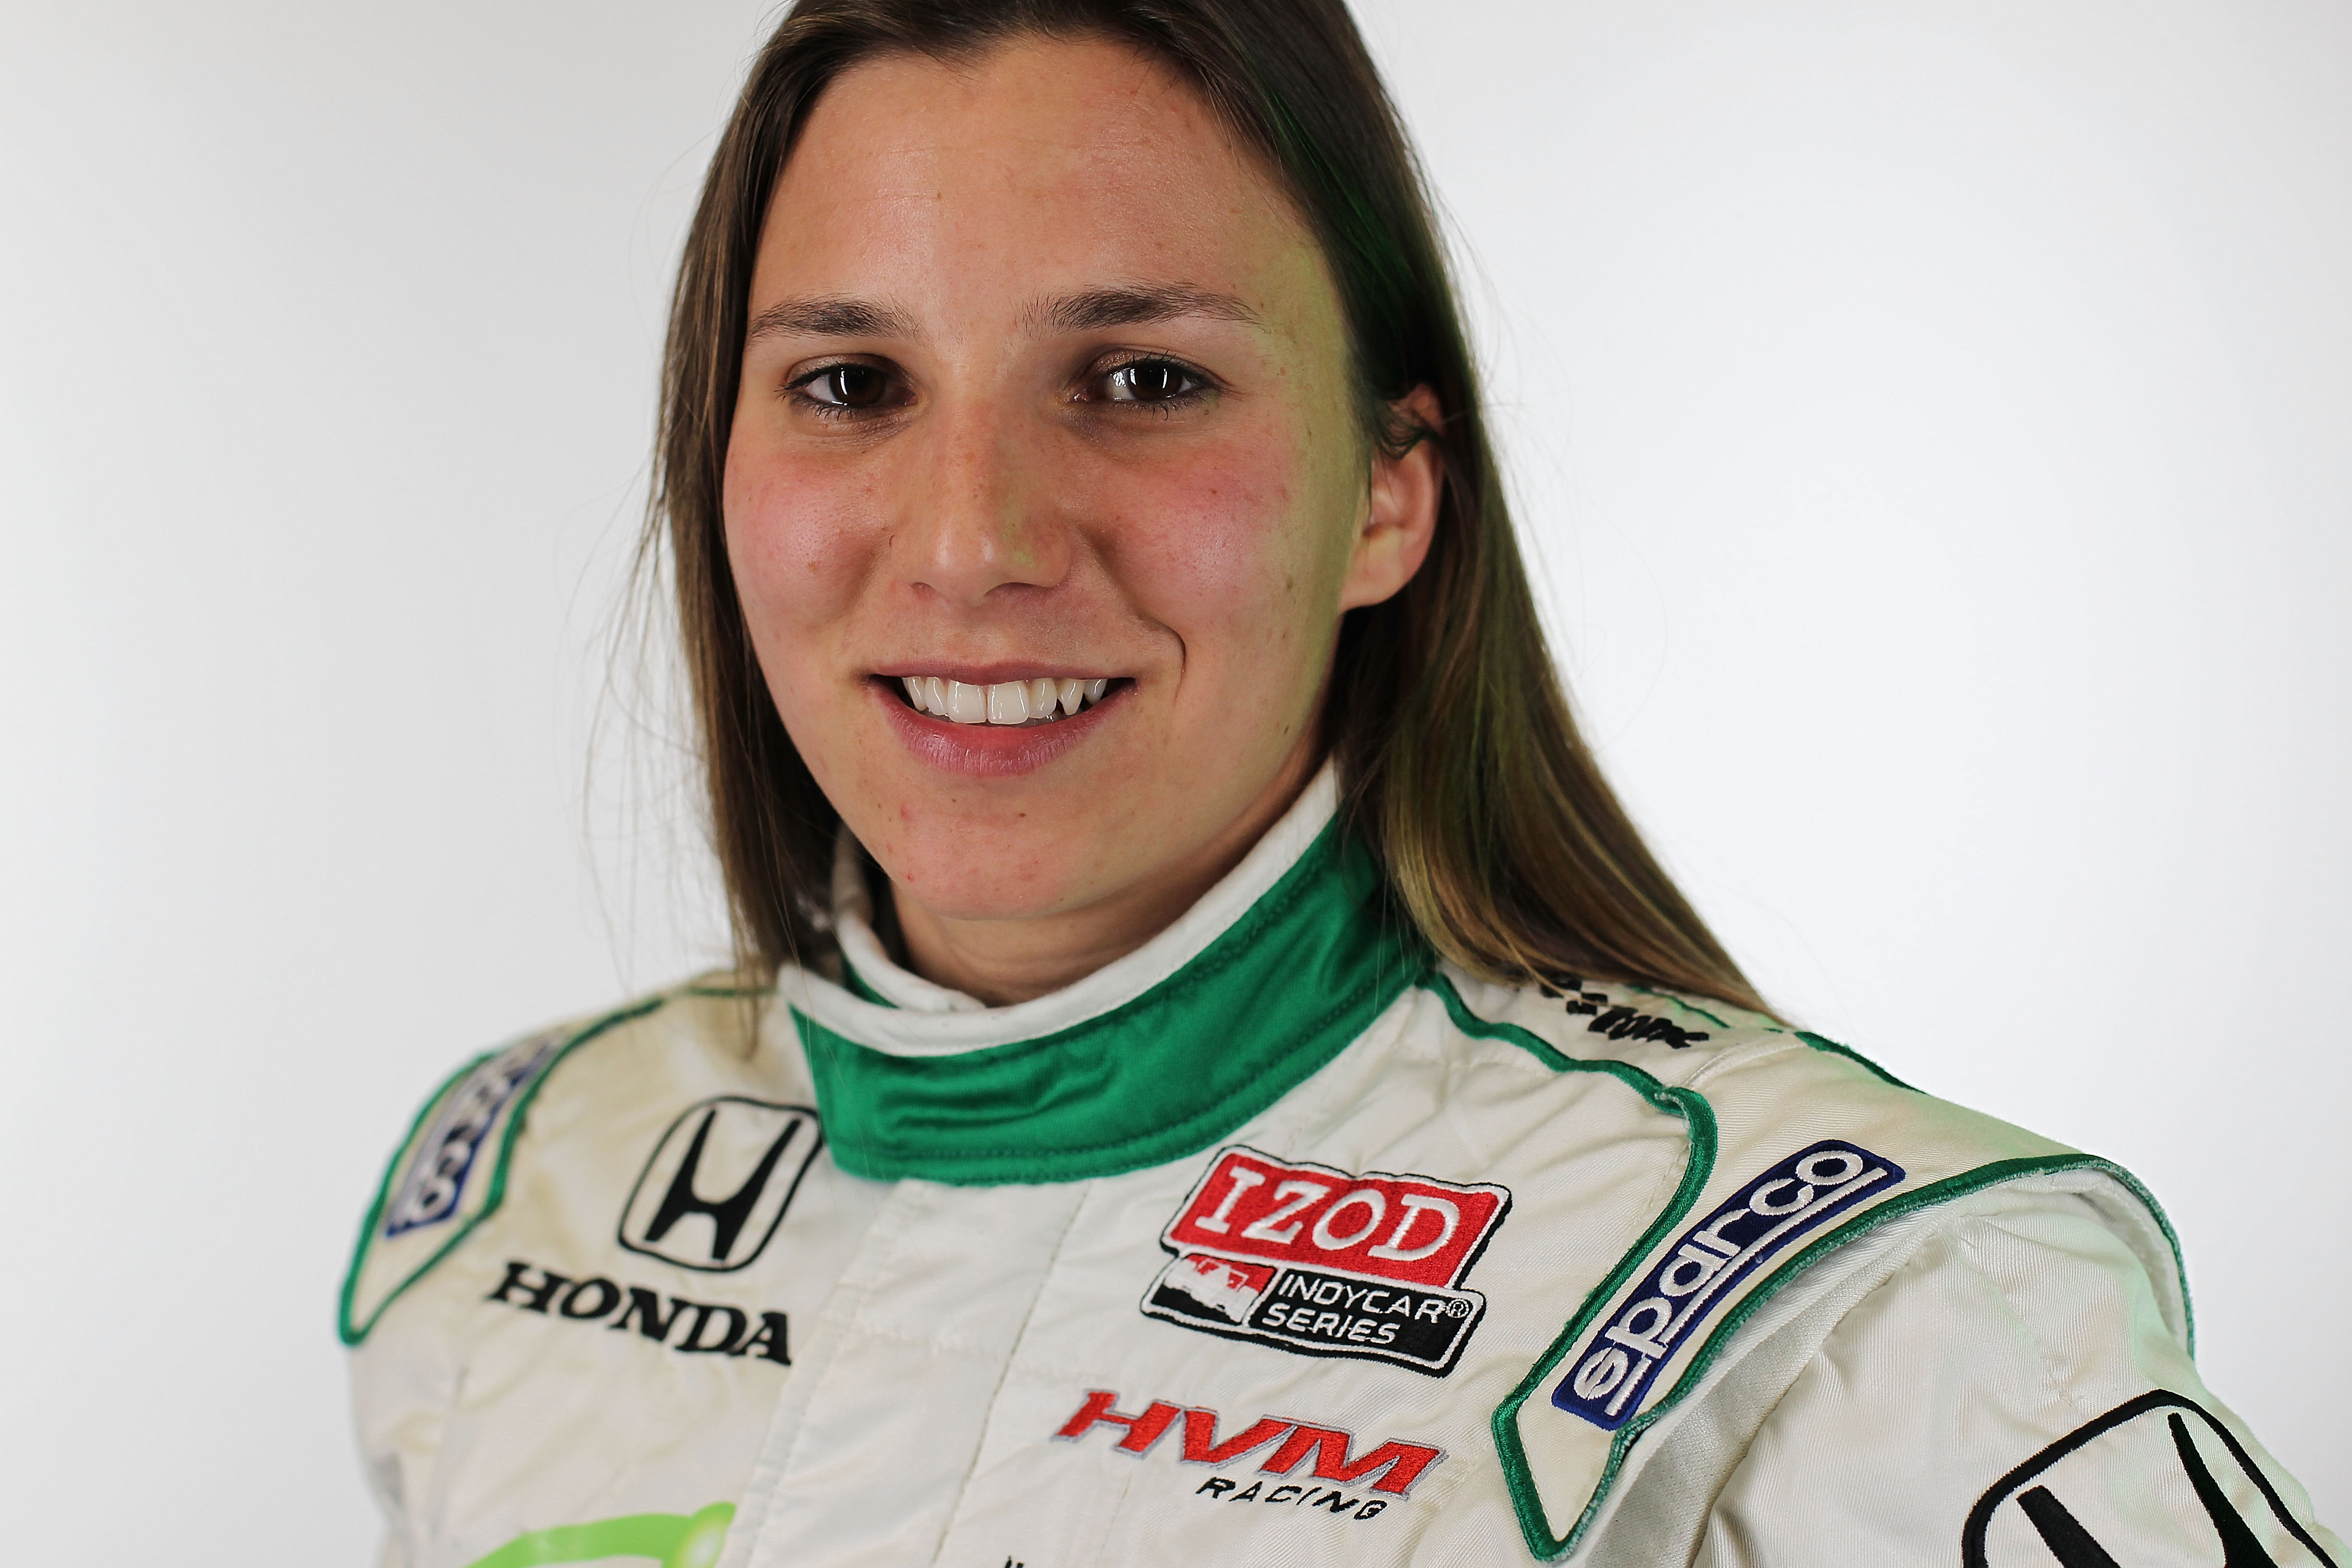 Simona DeSilvestro - Always ready to mix it up with the boys or girls.